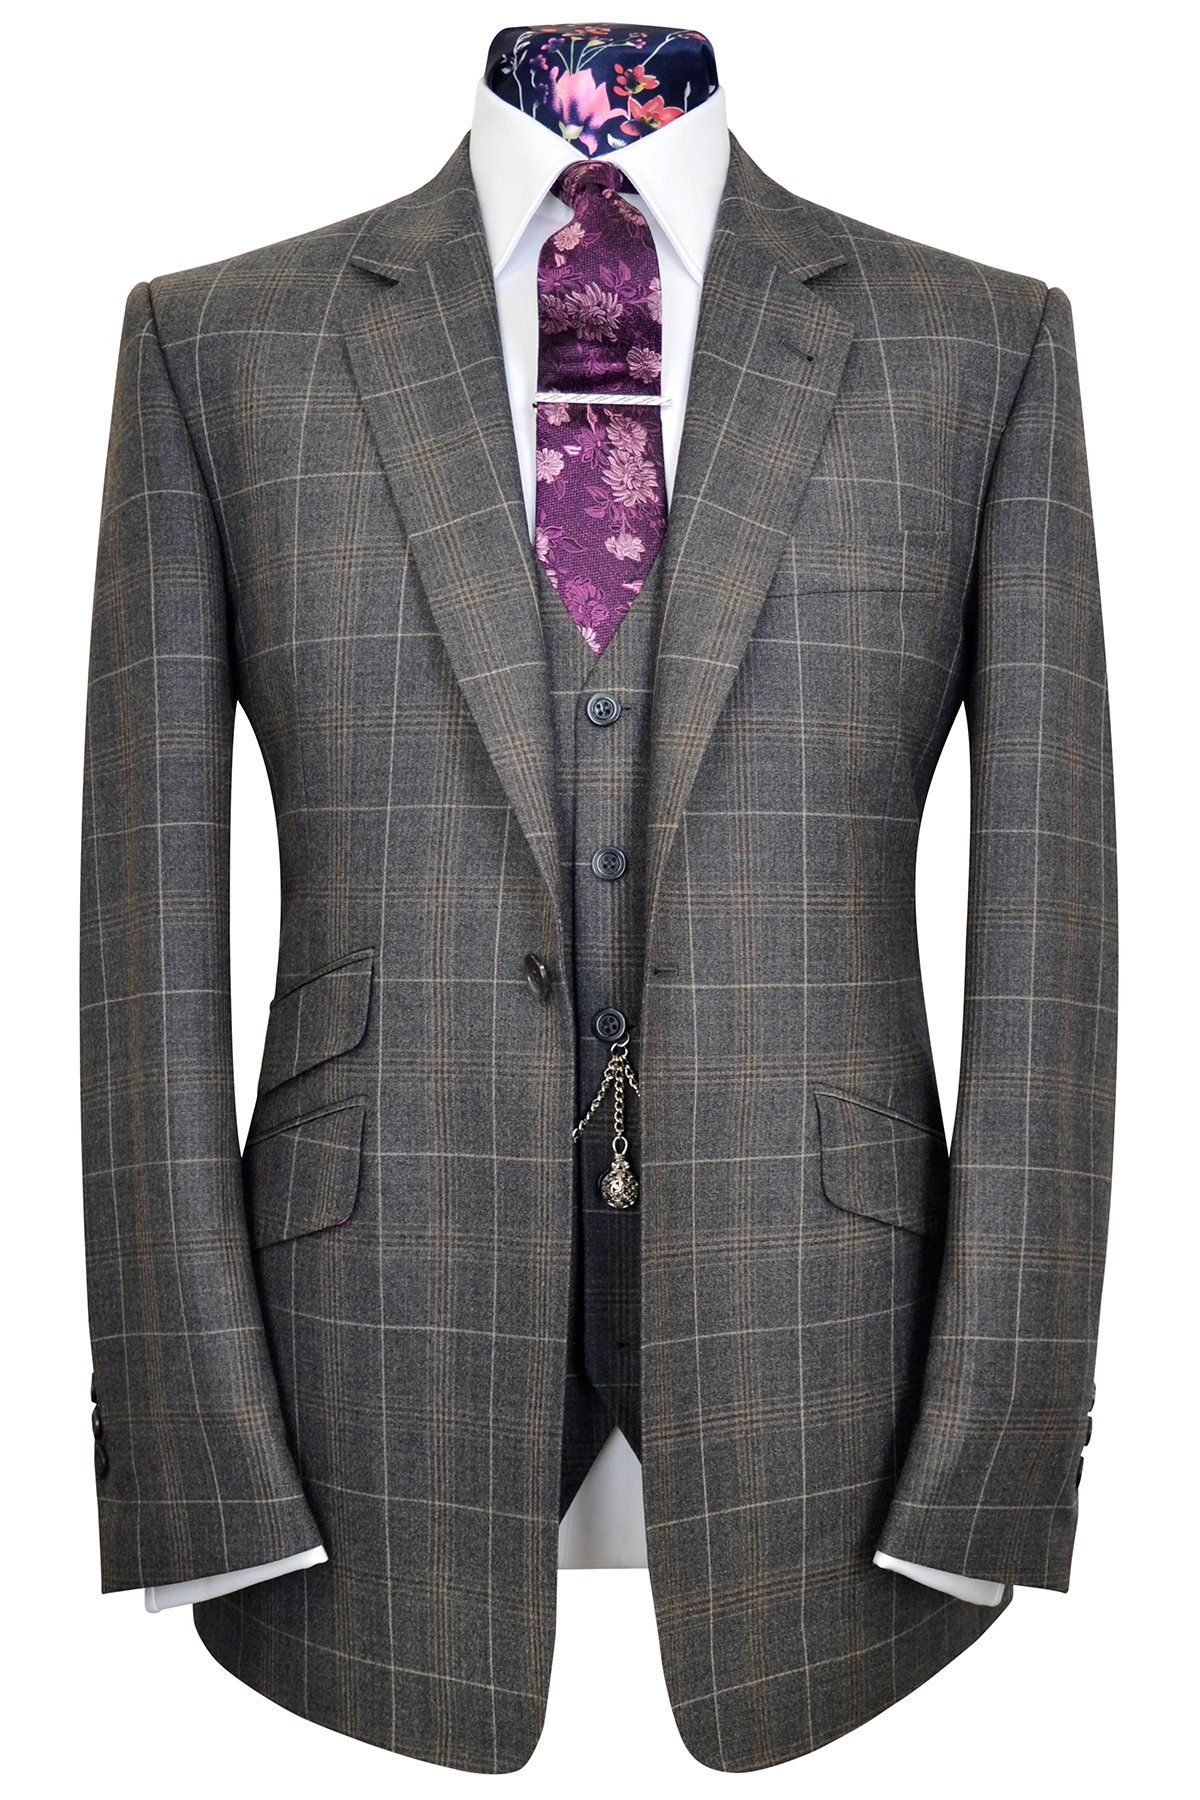 8acd6e5bfa59b The Caldwell Grey & Tan Windowpane Check Suit in 2019 | Mens suits ...